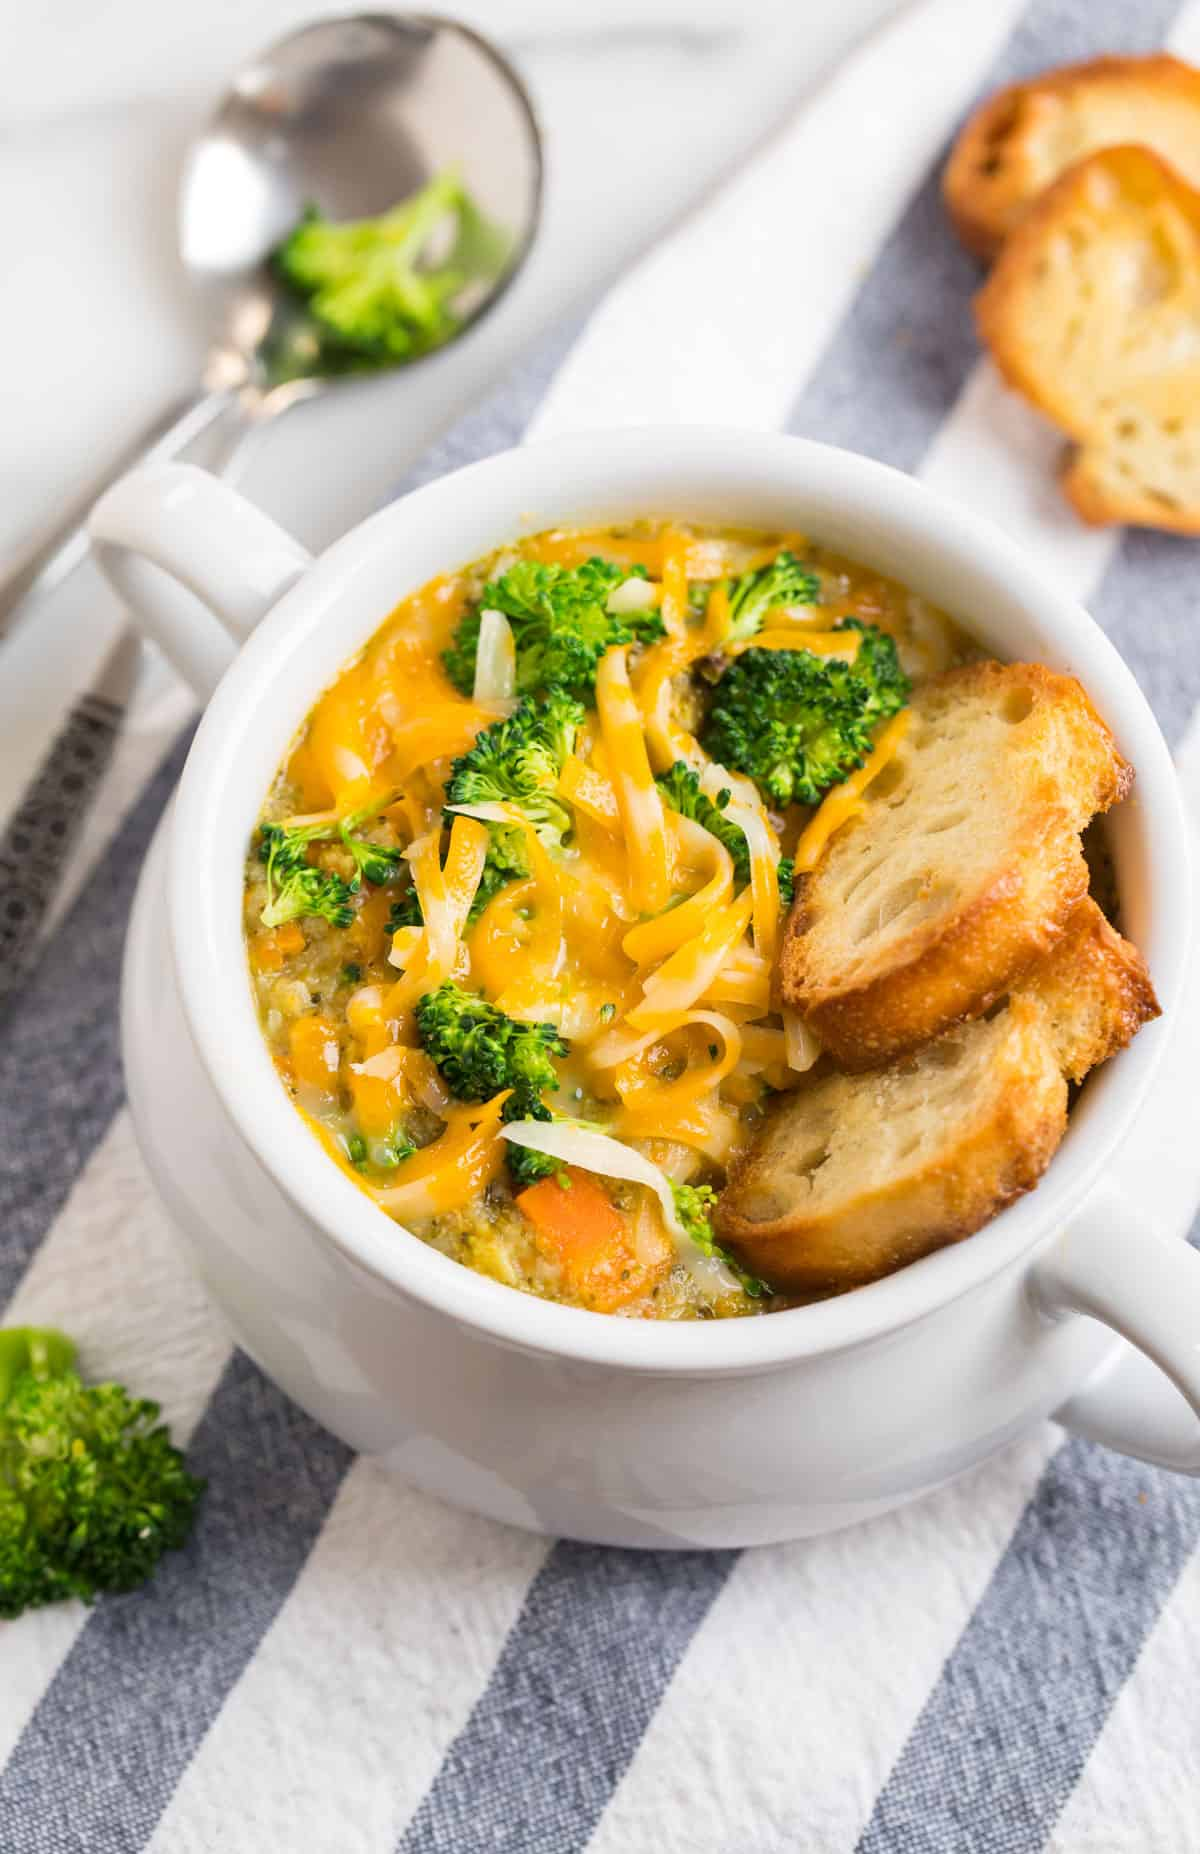 Healthy Instant Pot Broccoli Cheese Soup. Made in the pressure cooker for an easy weeknight dinner!